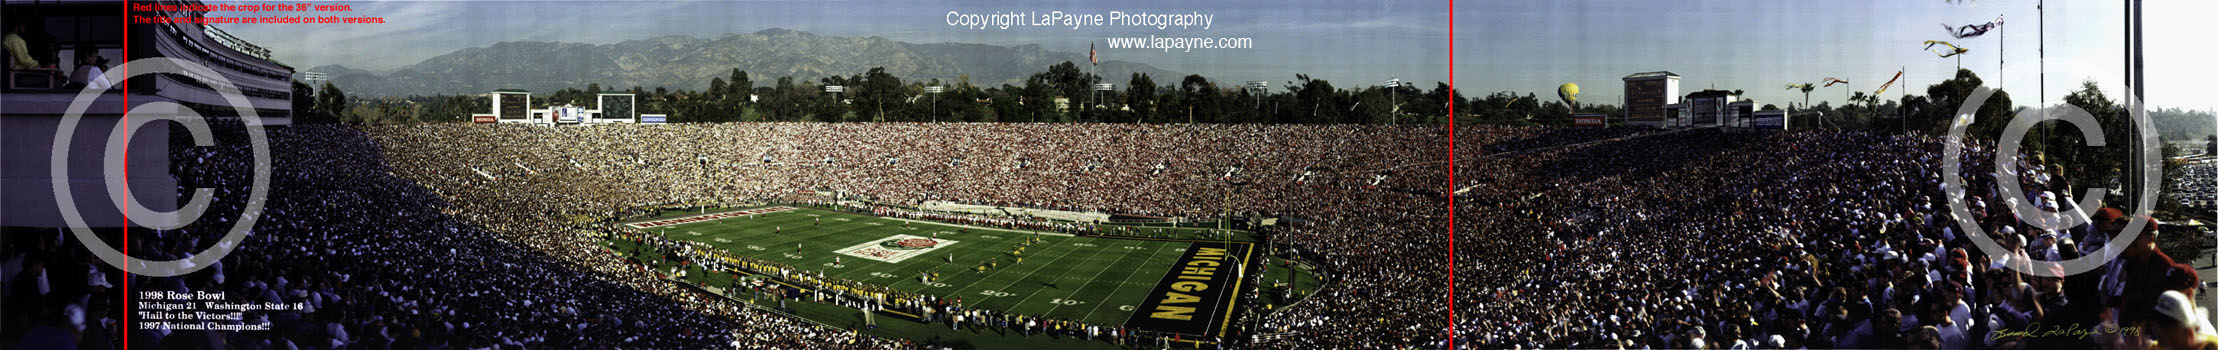 Rose Bowl 1998 - Kick Off Panorama